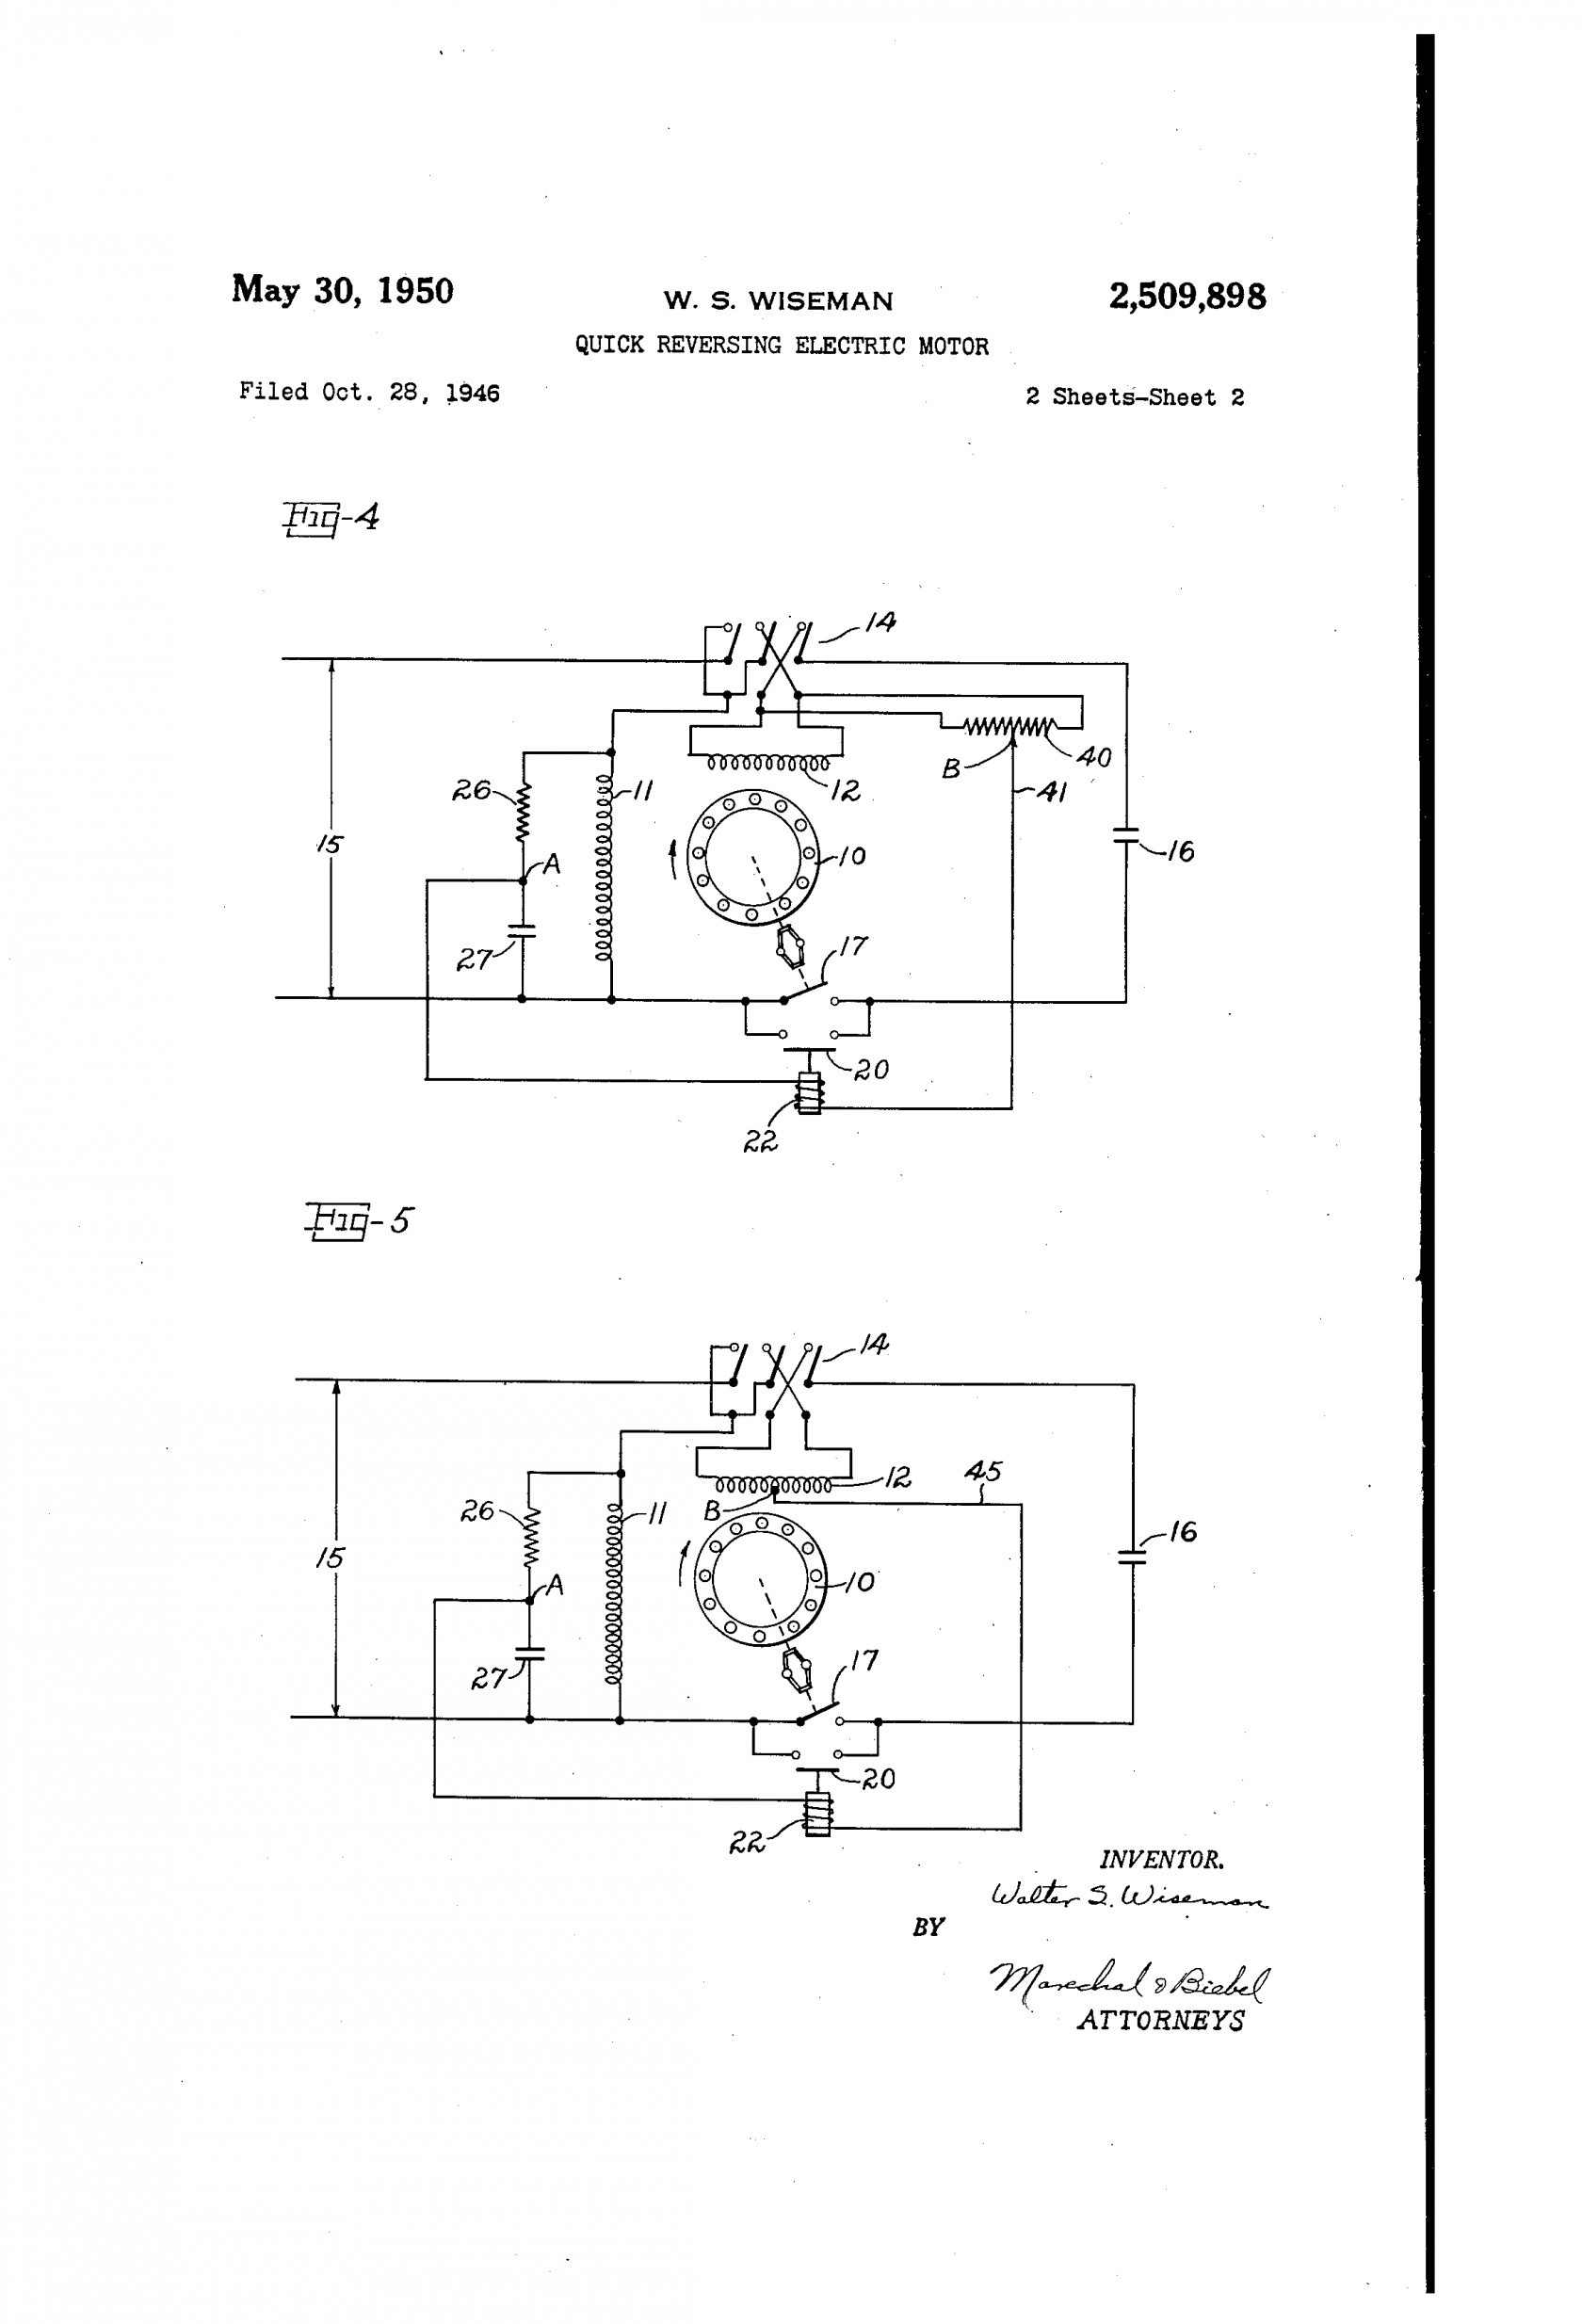 wiring diagram century electric company motors Download-Wiring Diagram For Electric Motor With Capacitor Inspirationa Century Electric Motor Wiring Diagram Luxury Delighted Wiring 4-a